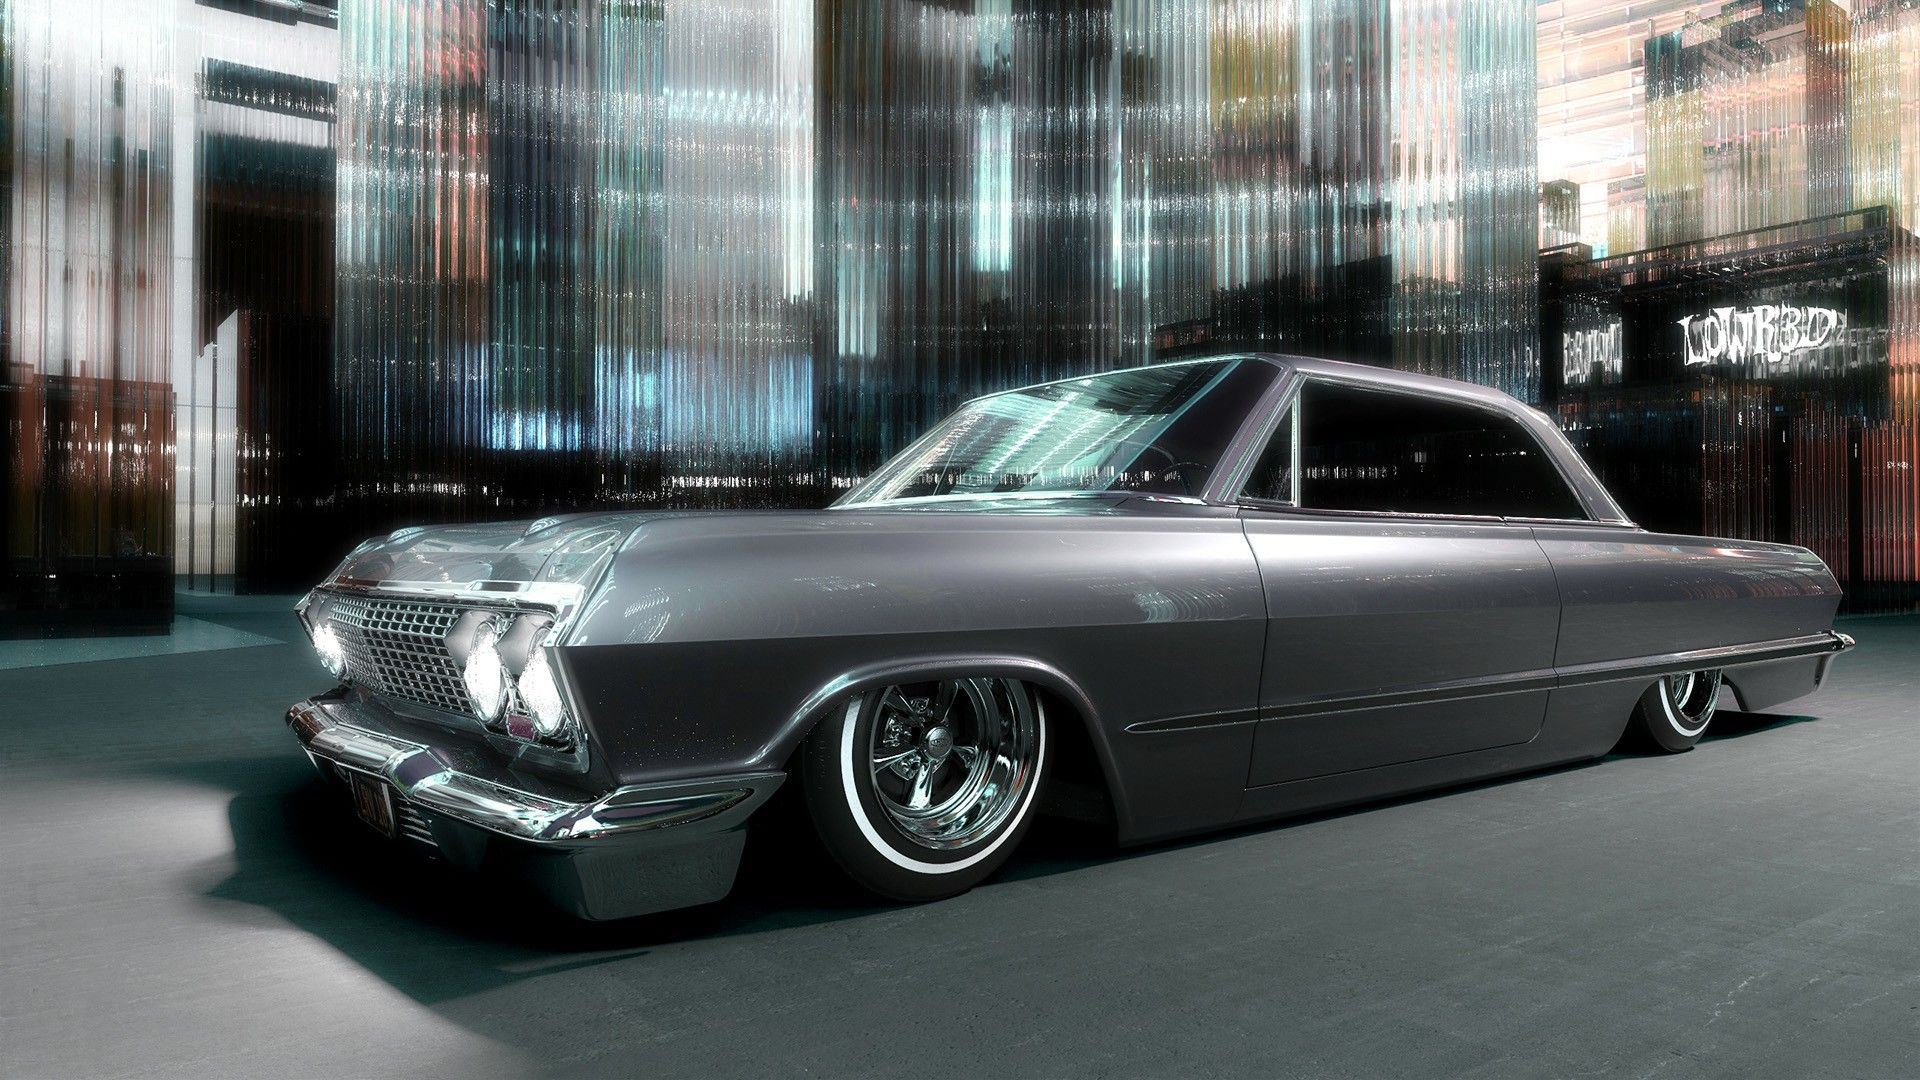 Pin By Andre On Strictly Impalas Hot Cars Dream Cars Chevy Impala